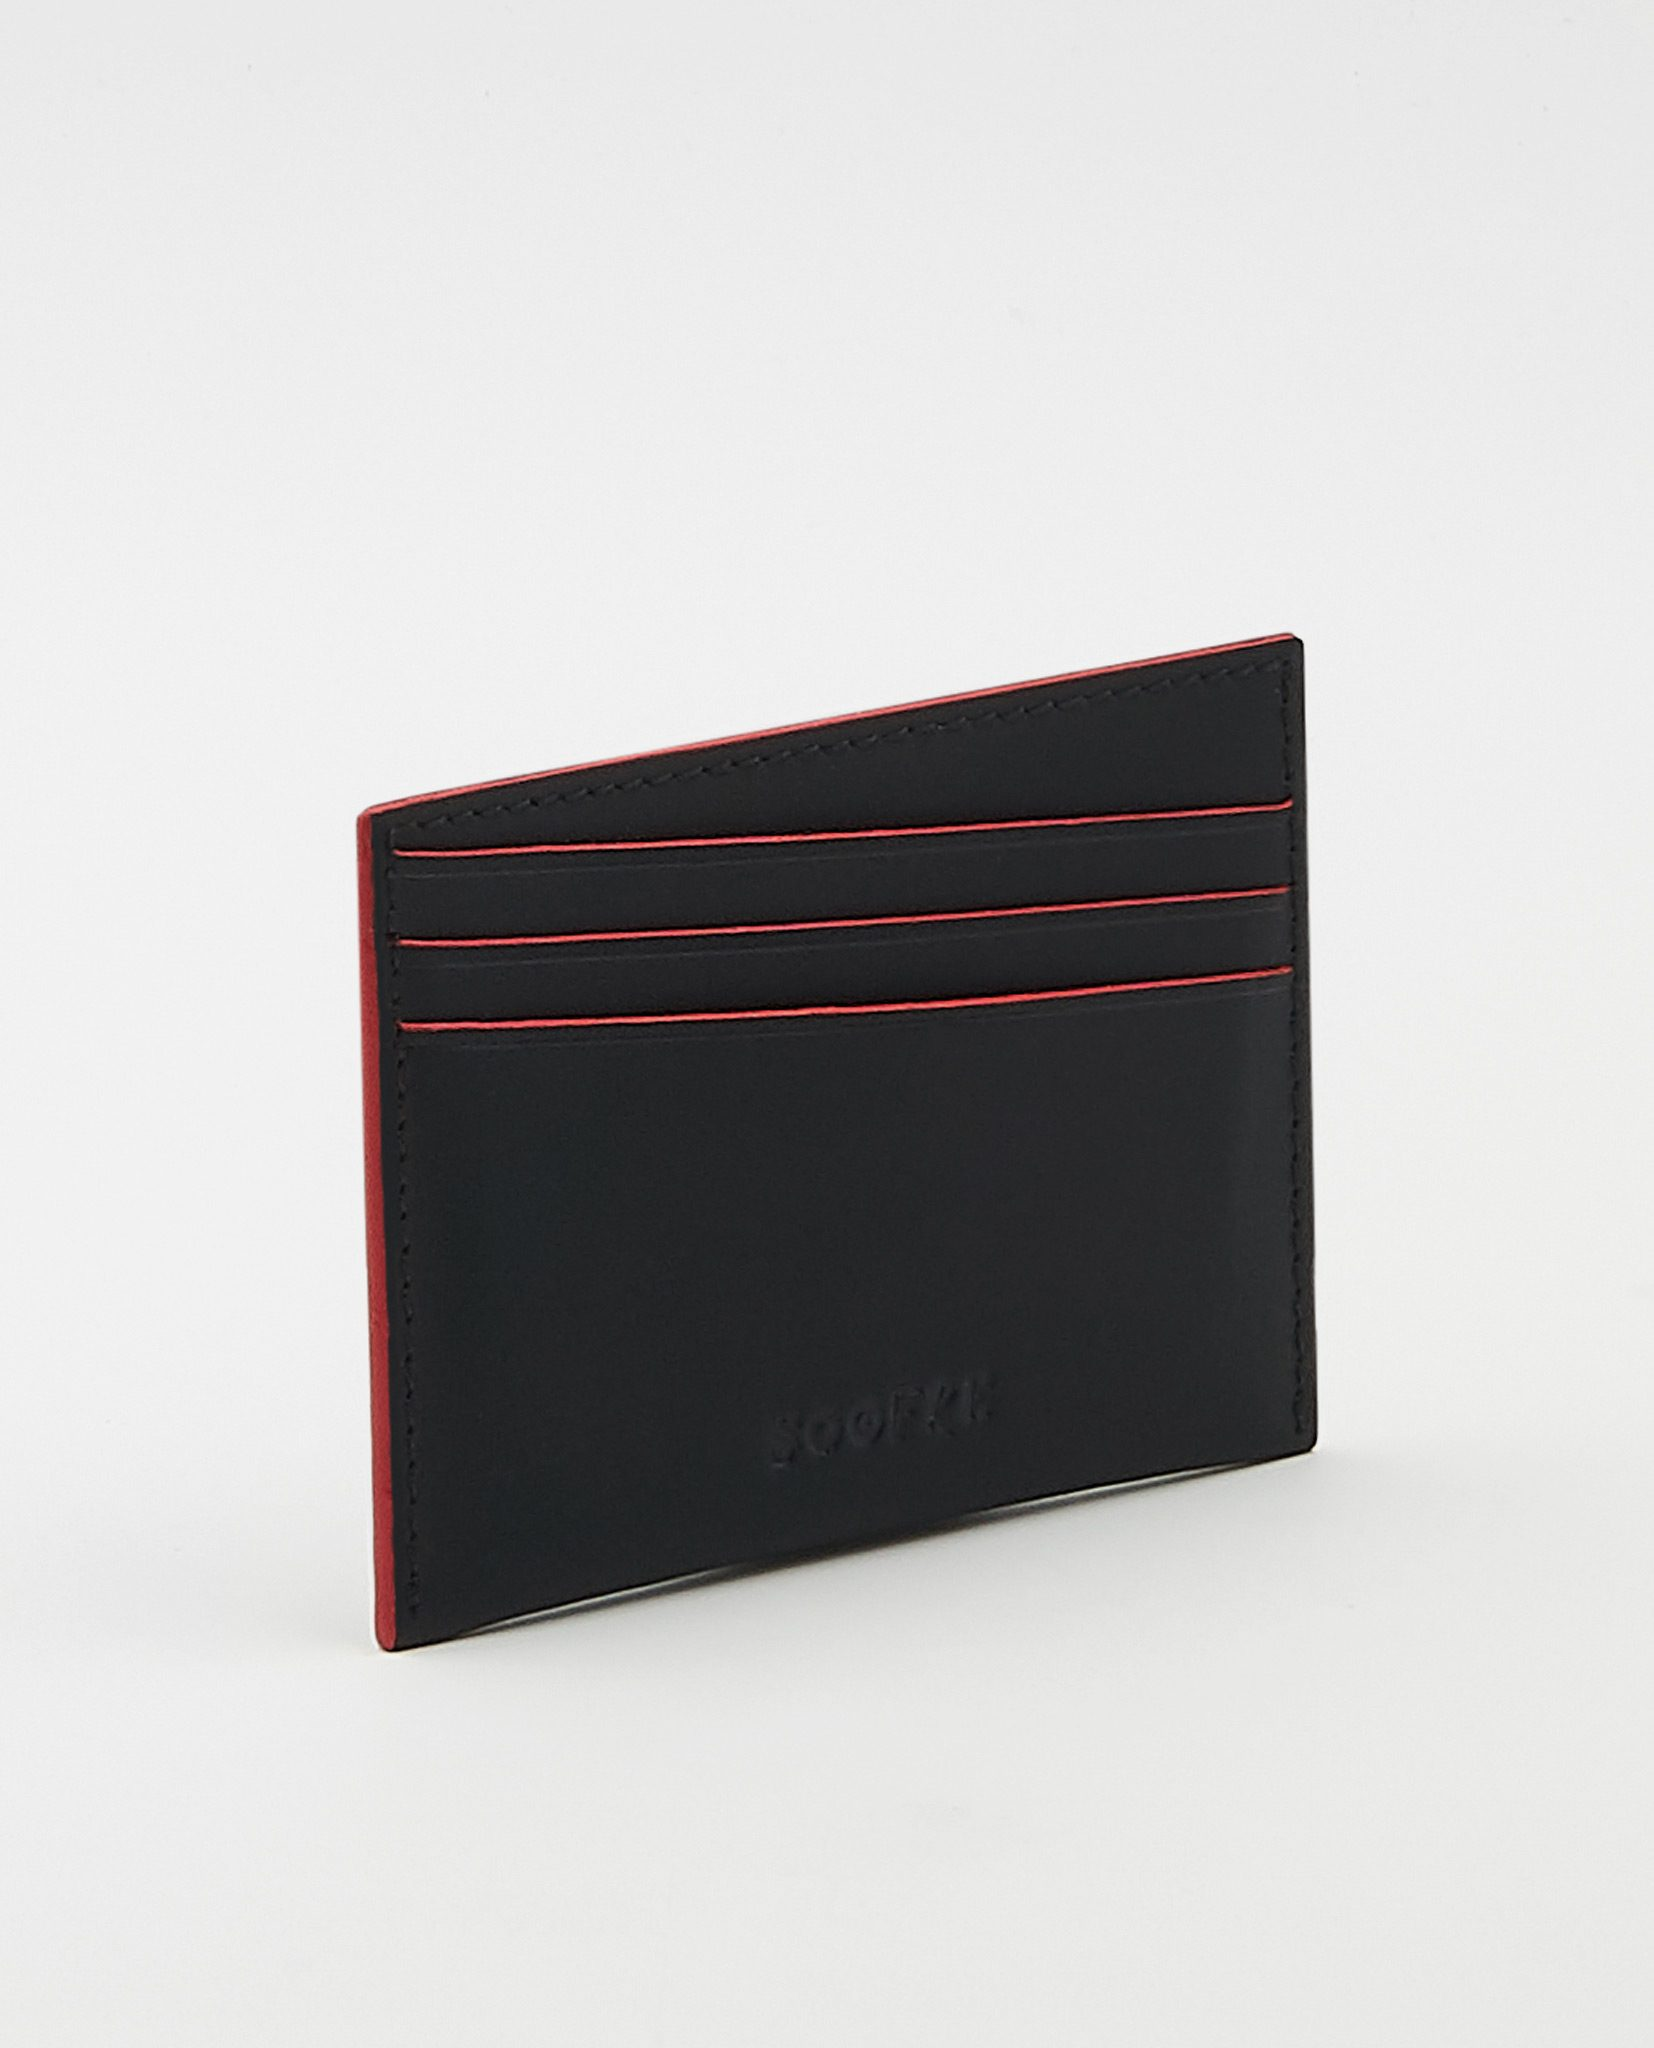 Soofre Vegetable Tanned Leather Card Holder Black Red